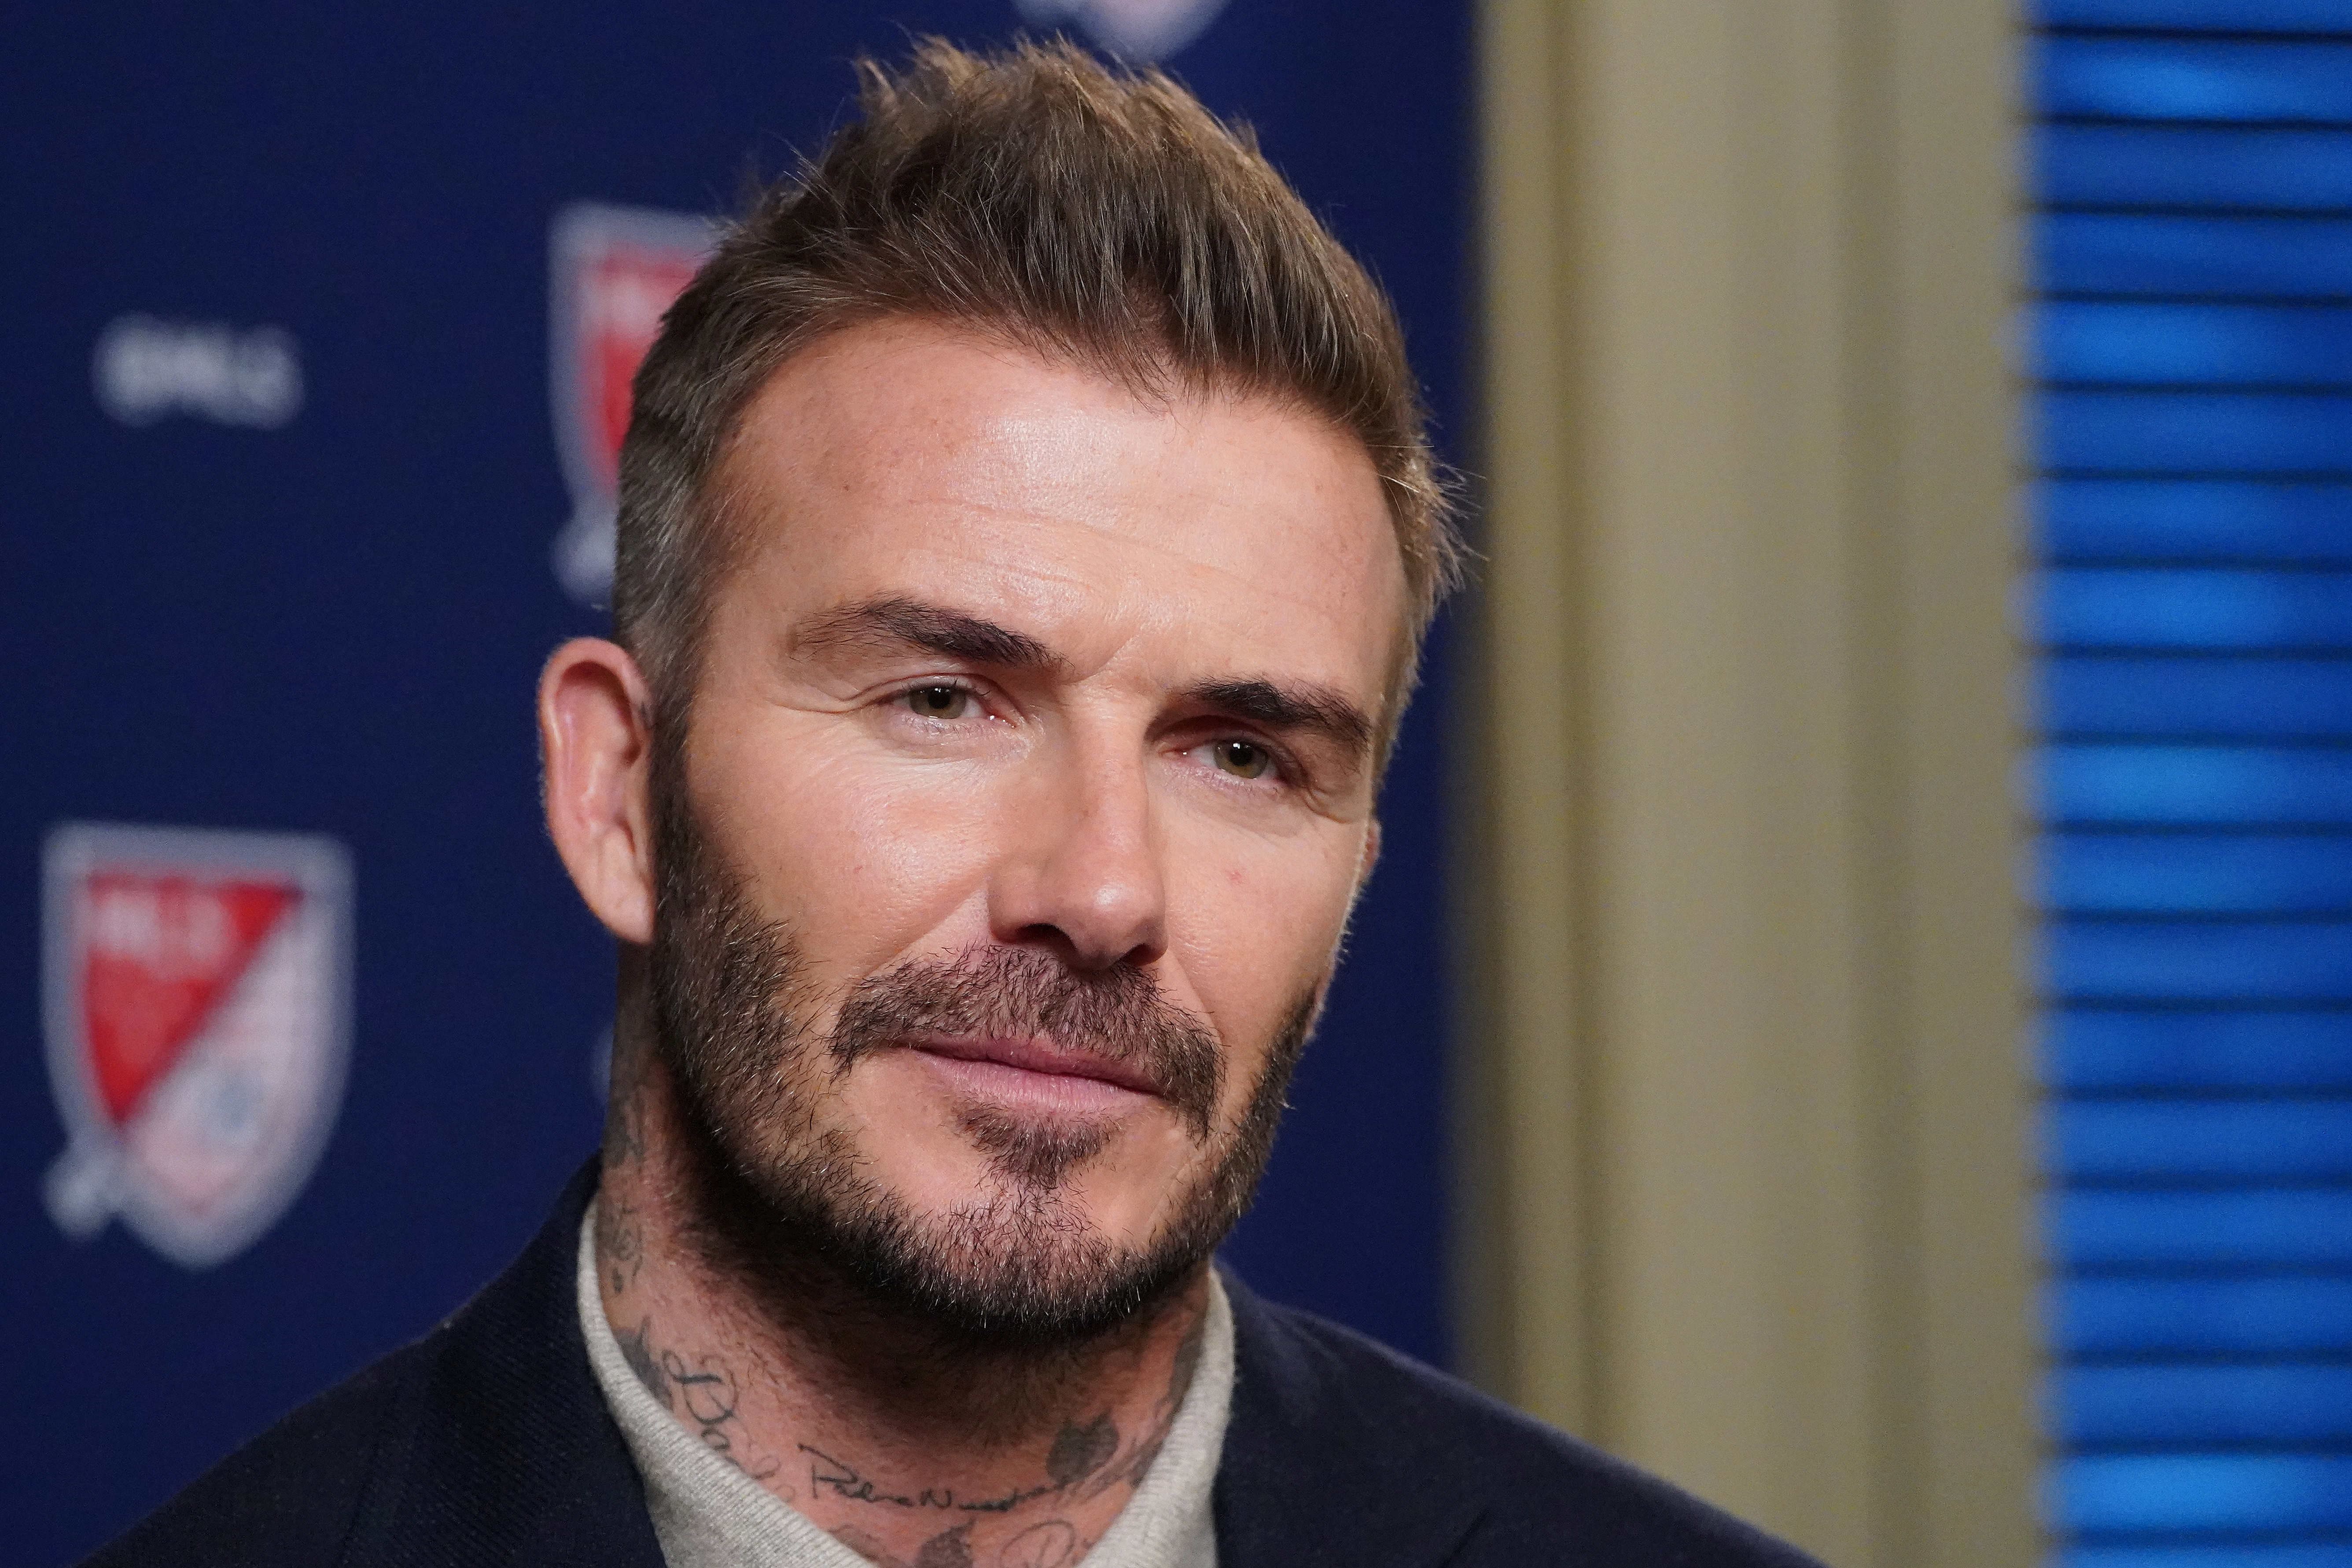 Former soccer player and MLS team owner David Beckham speaks during an interview in the Manhattan borough of New York City, New York, U.S., February 26, 2020. REUTERS/Carlo Allegri/File photo